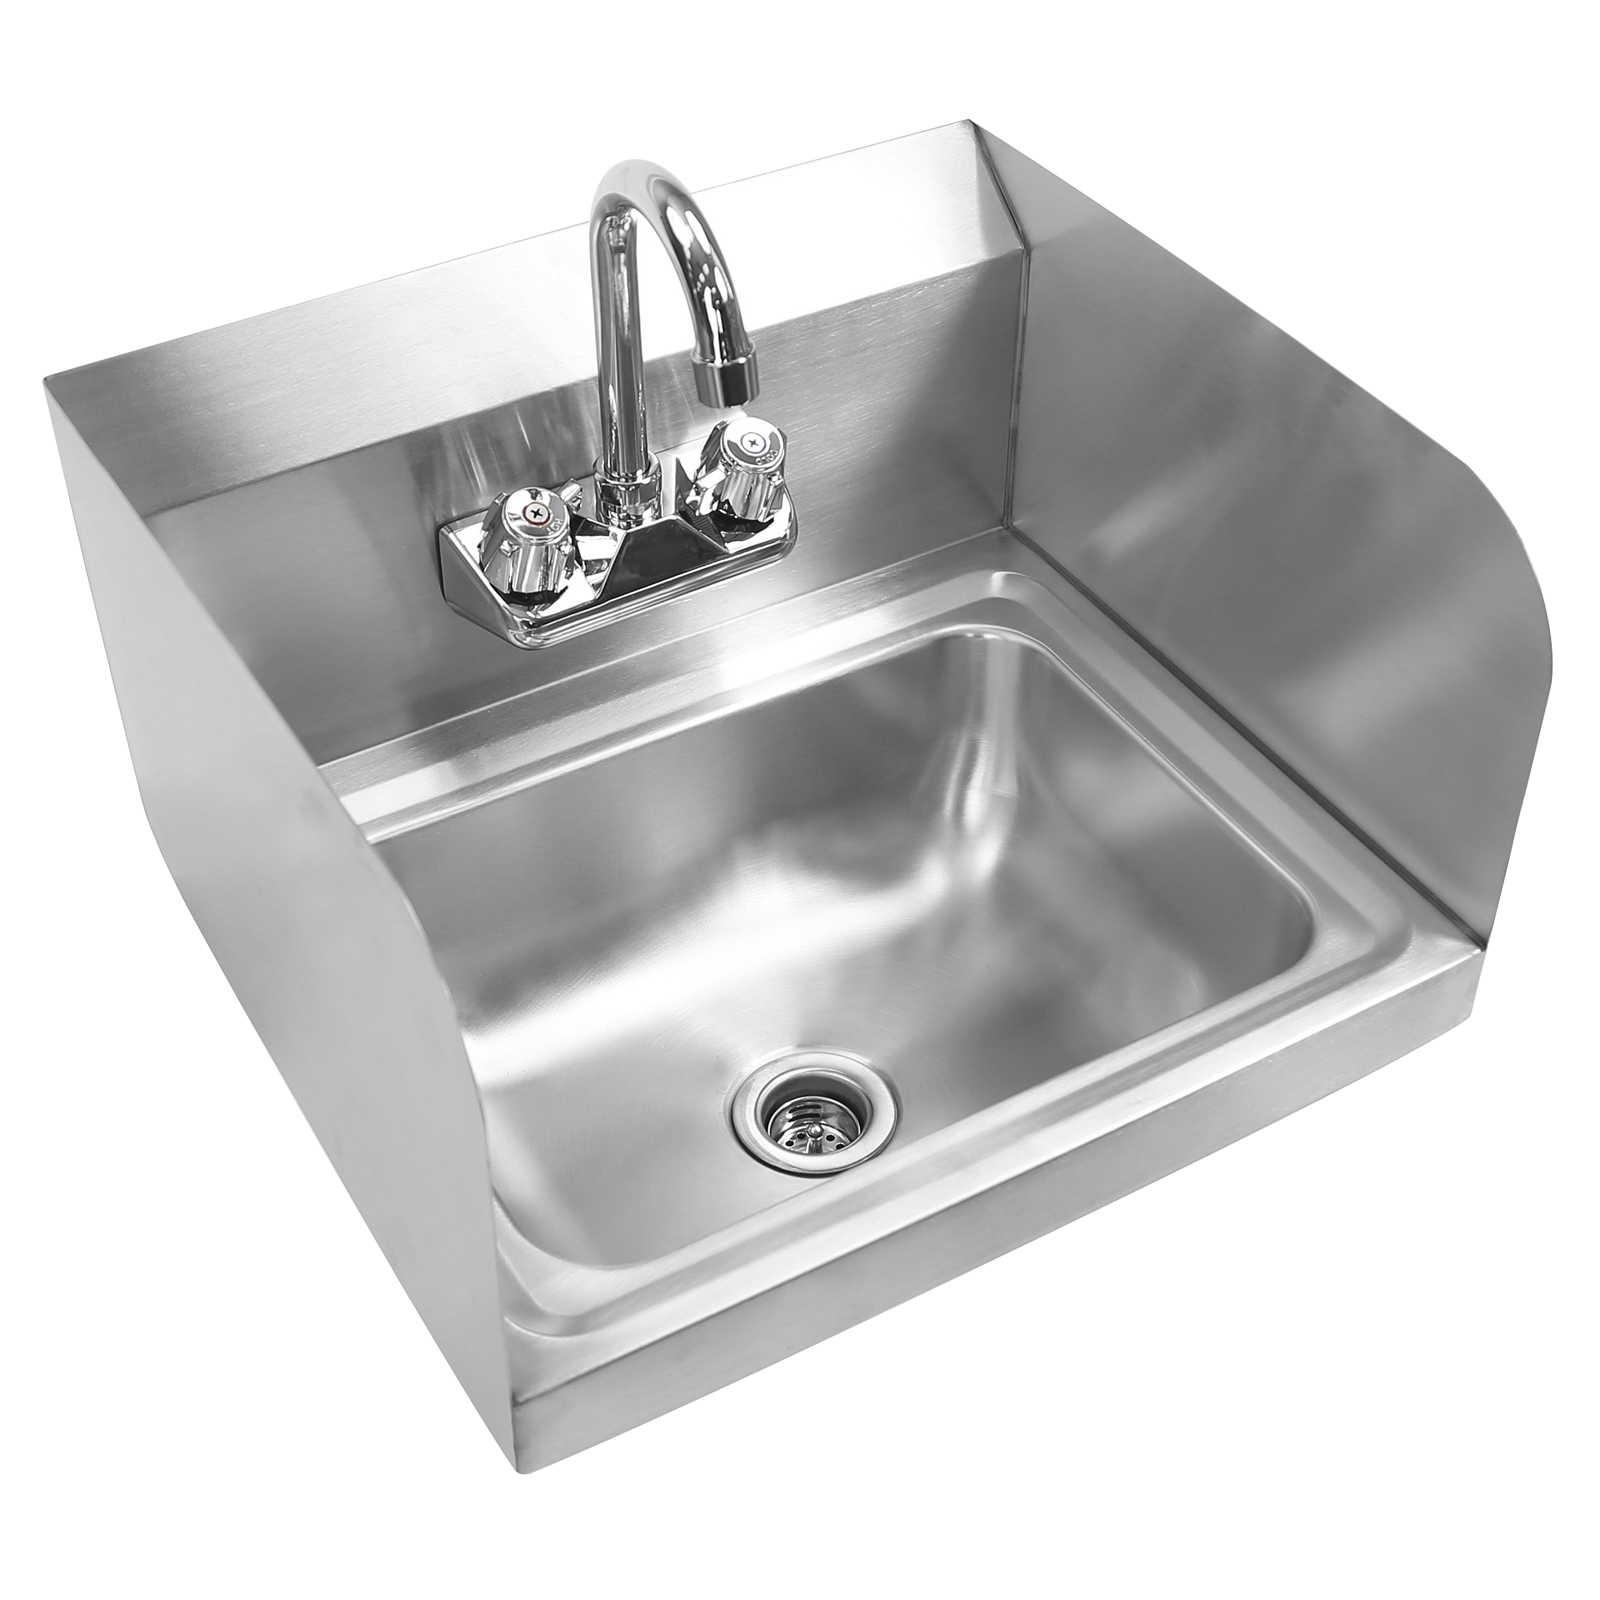 Commercial Stainless Steel Wall Mount Hand Wash Washing Sink Kitchen ...